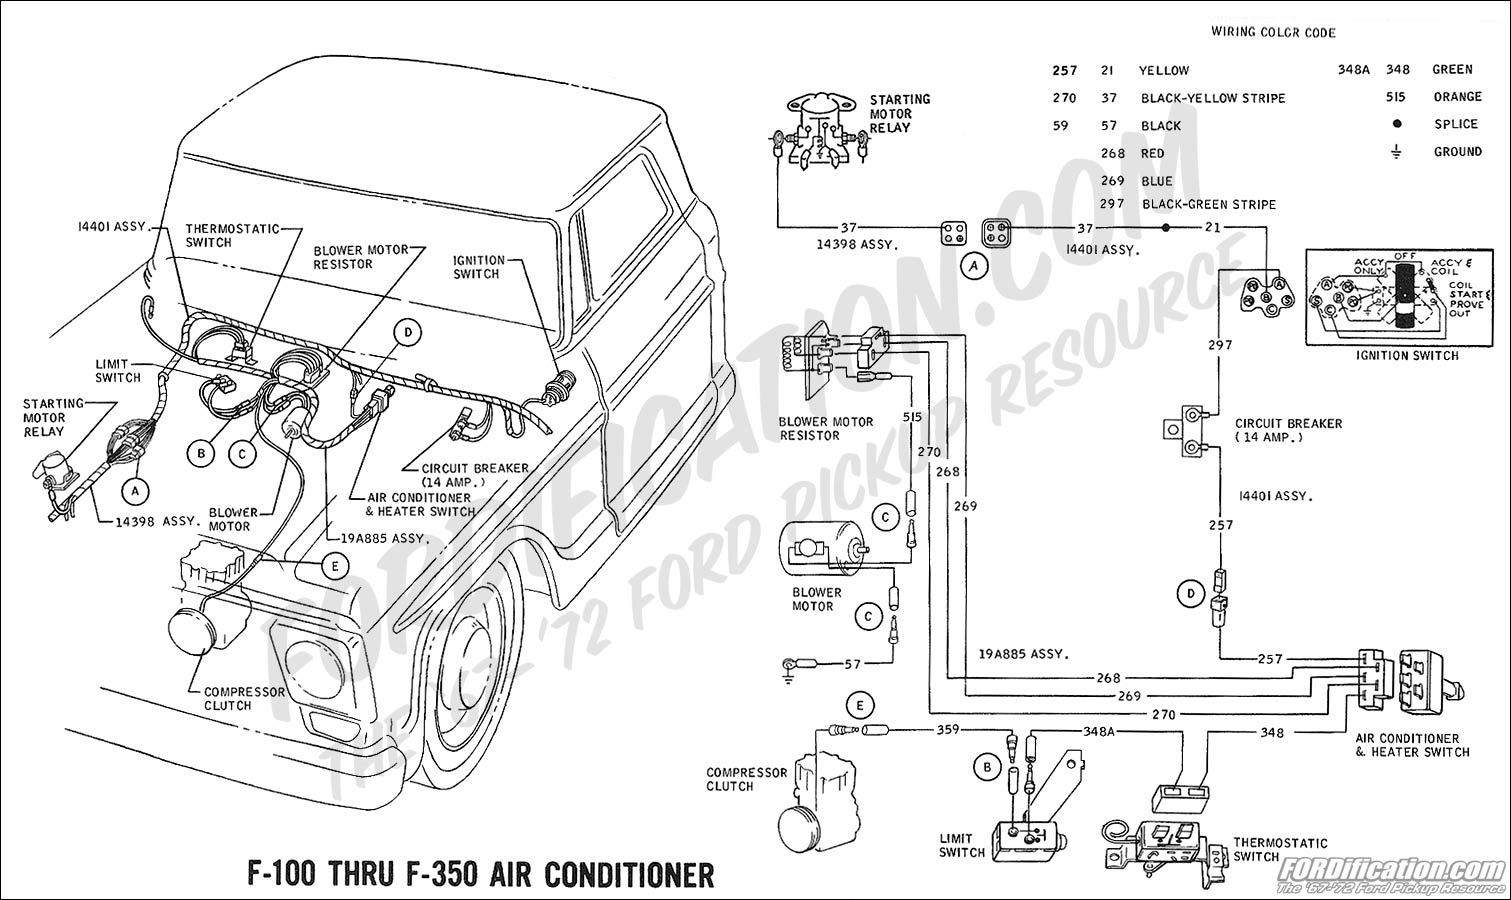 wiring diagram for 2000 ford f250 wiring discover your wiring 69 f250 wiring diagram